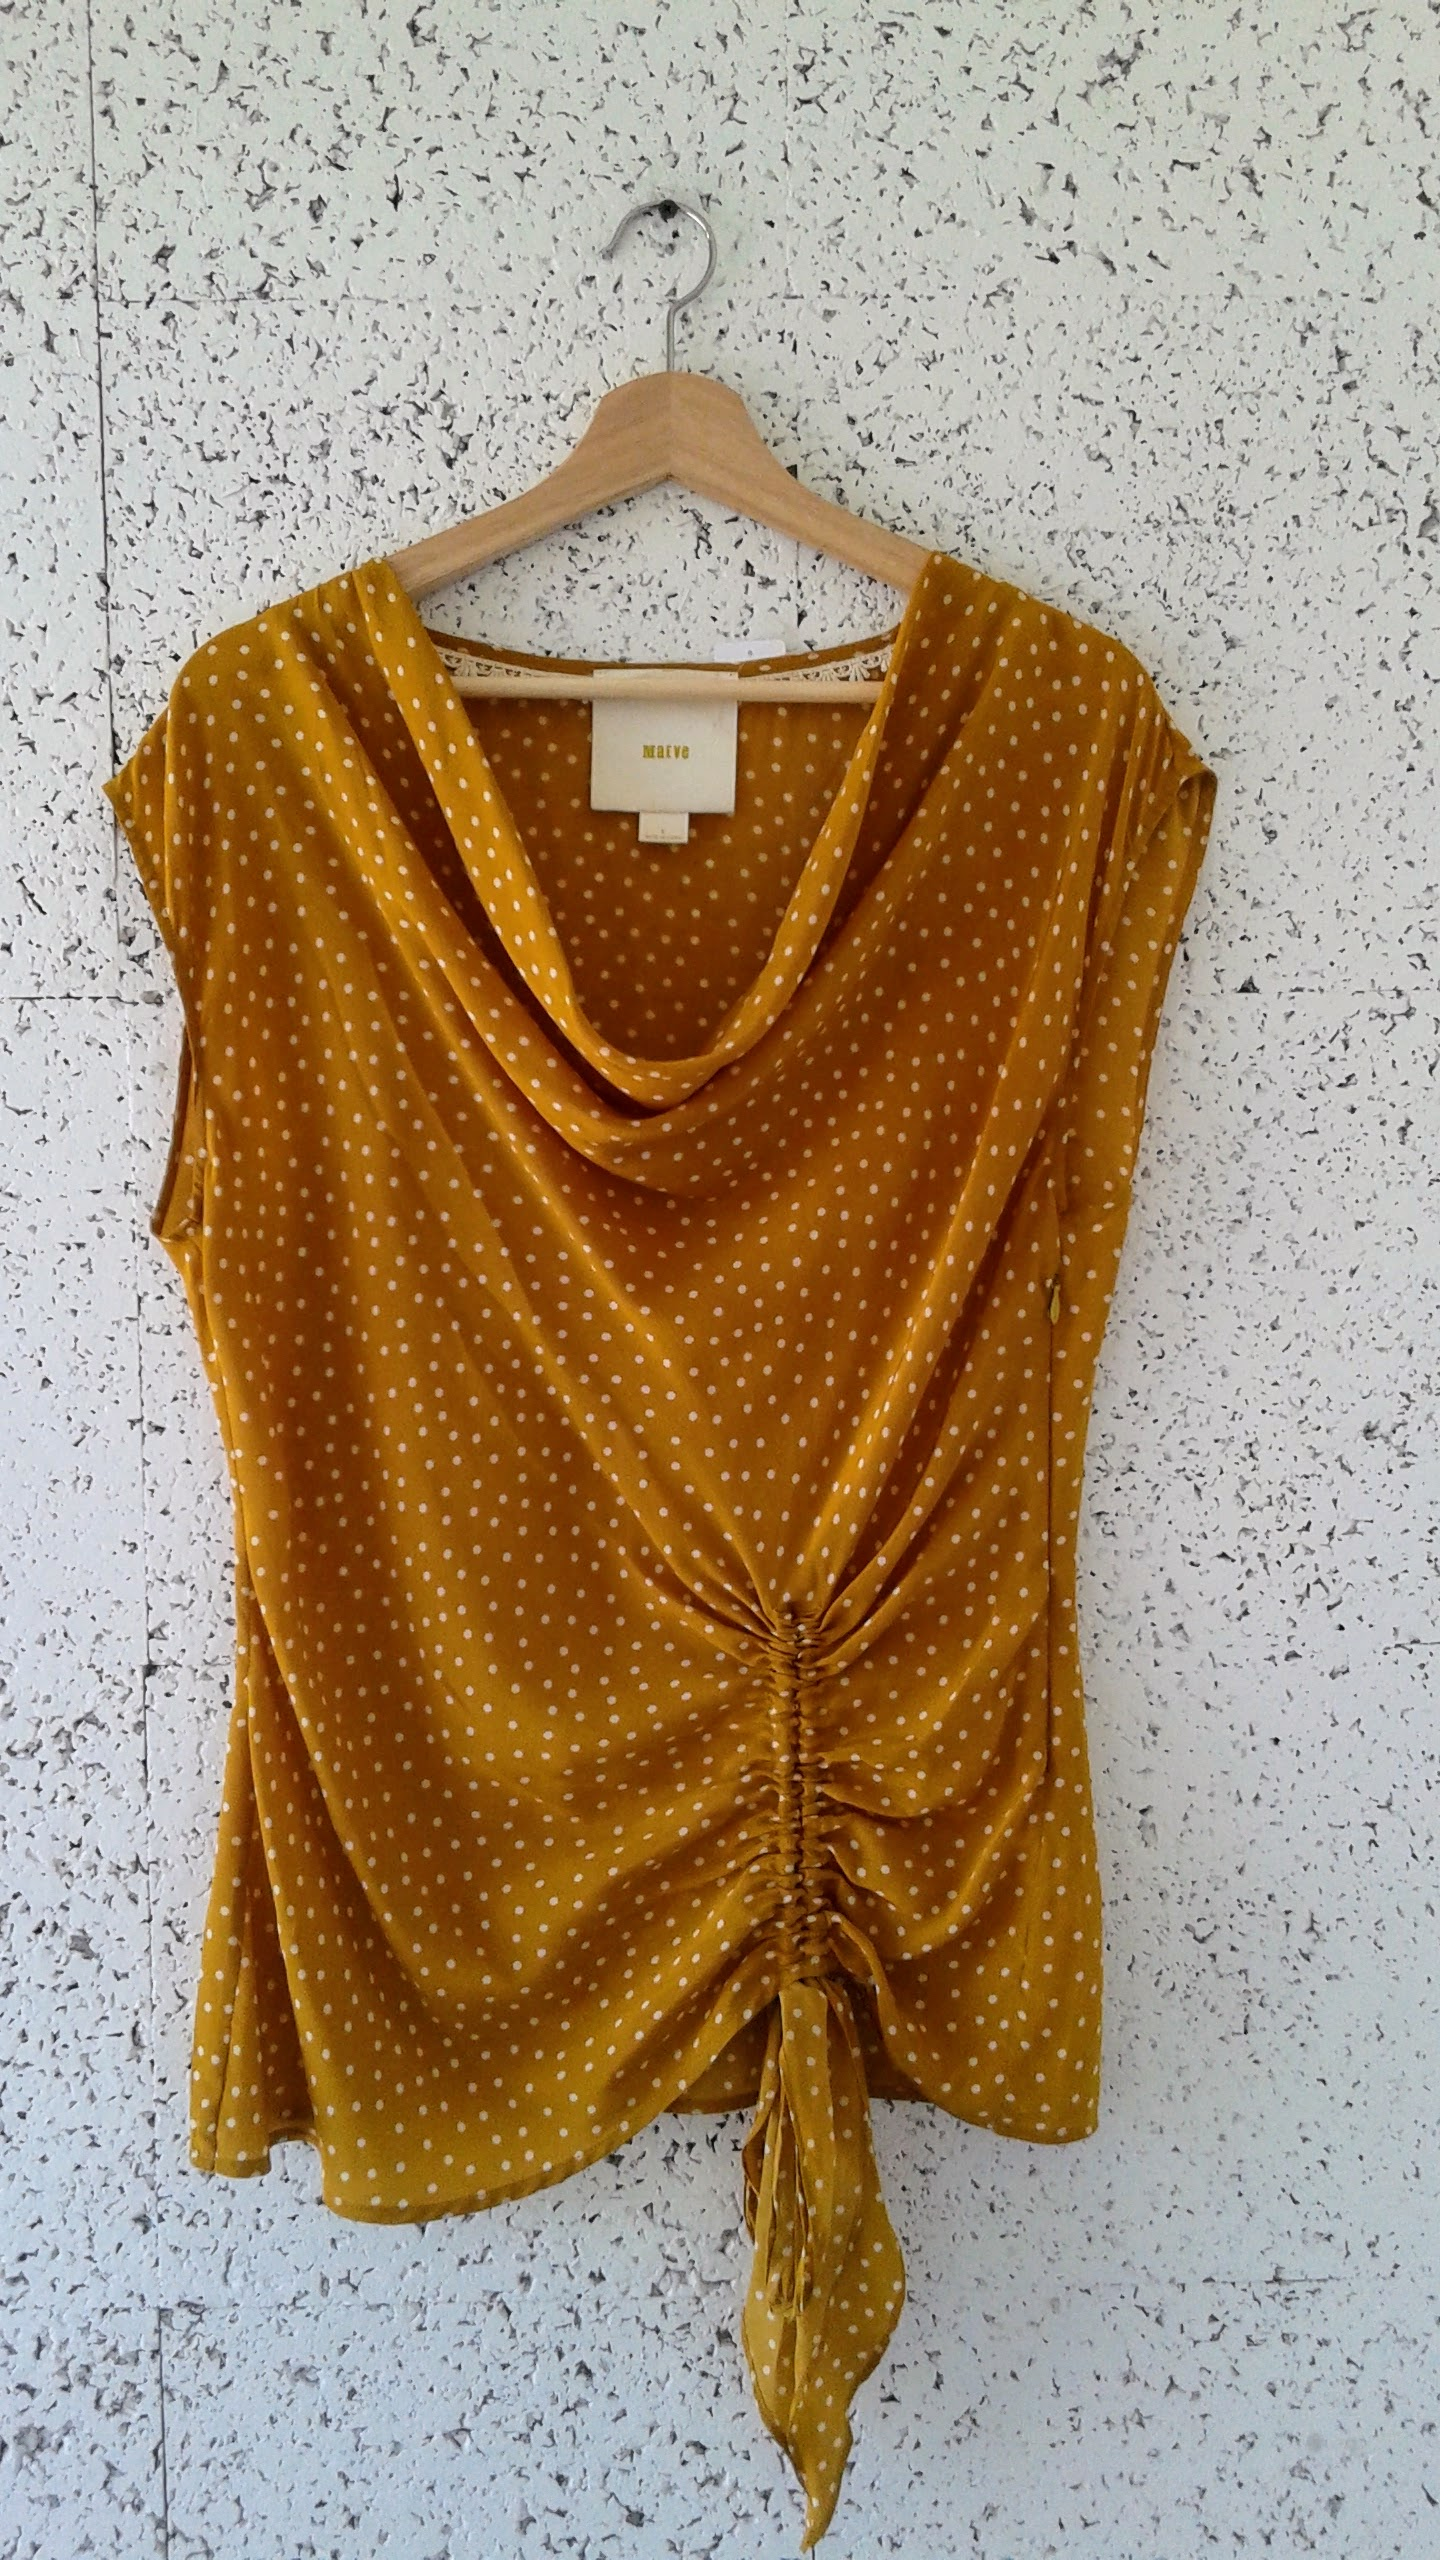 Maeve top; Size 8, $24